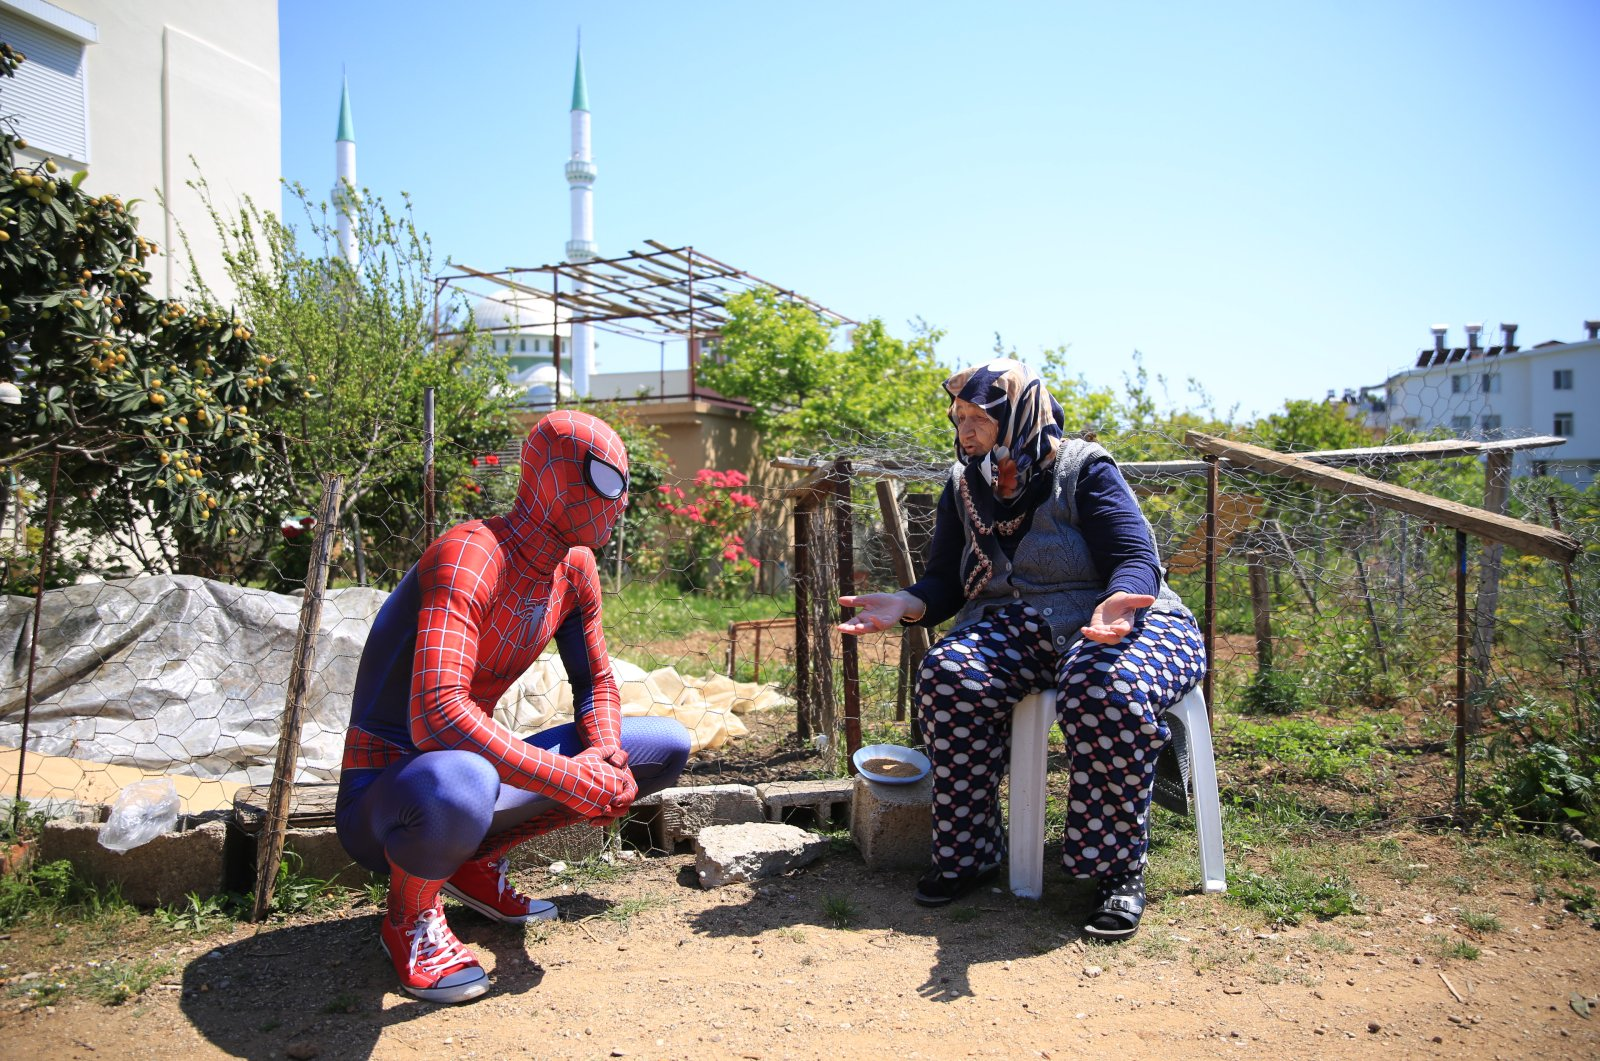 Burak Soylu in his Spider-Man costume (L) chats with a local, Antalya, Turkey, Tuesday, April 14, 2020. (AA Photo)